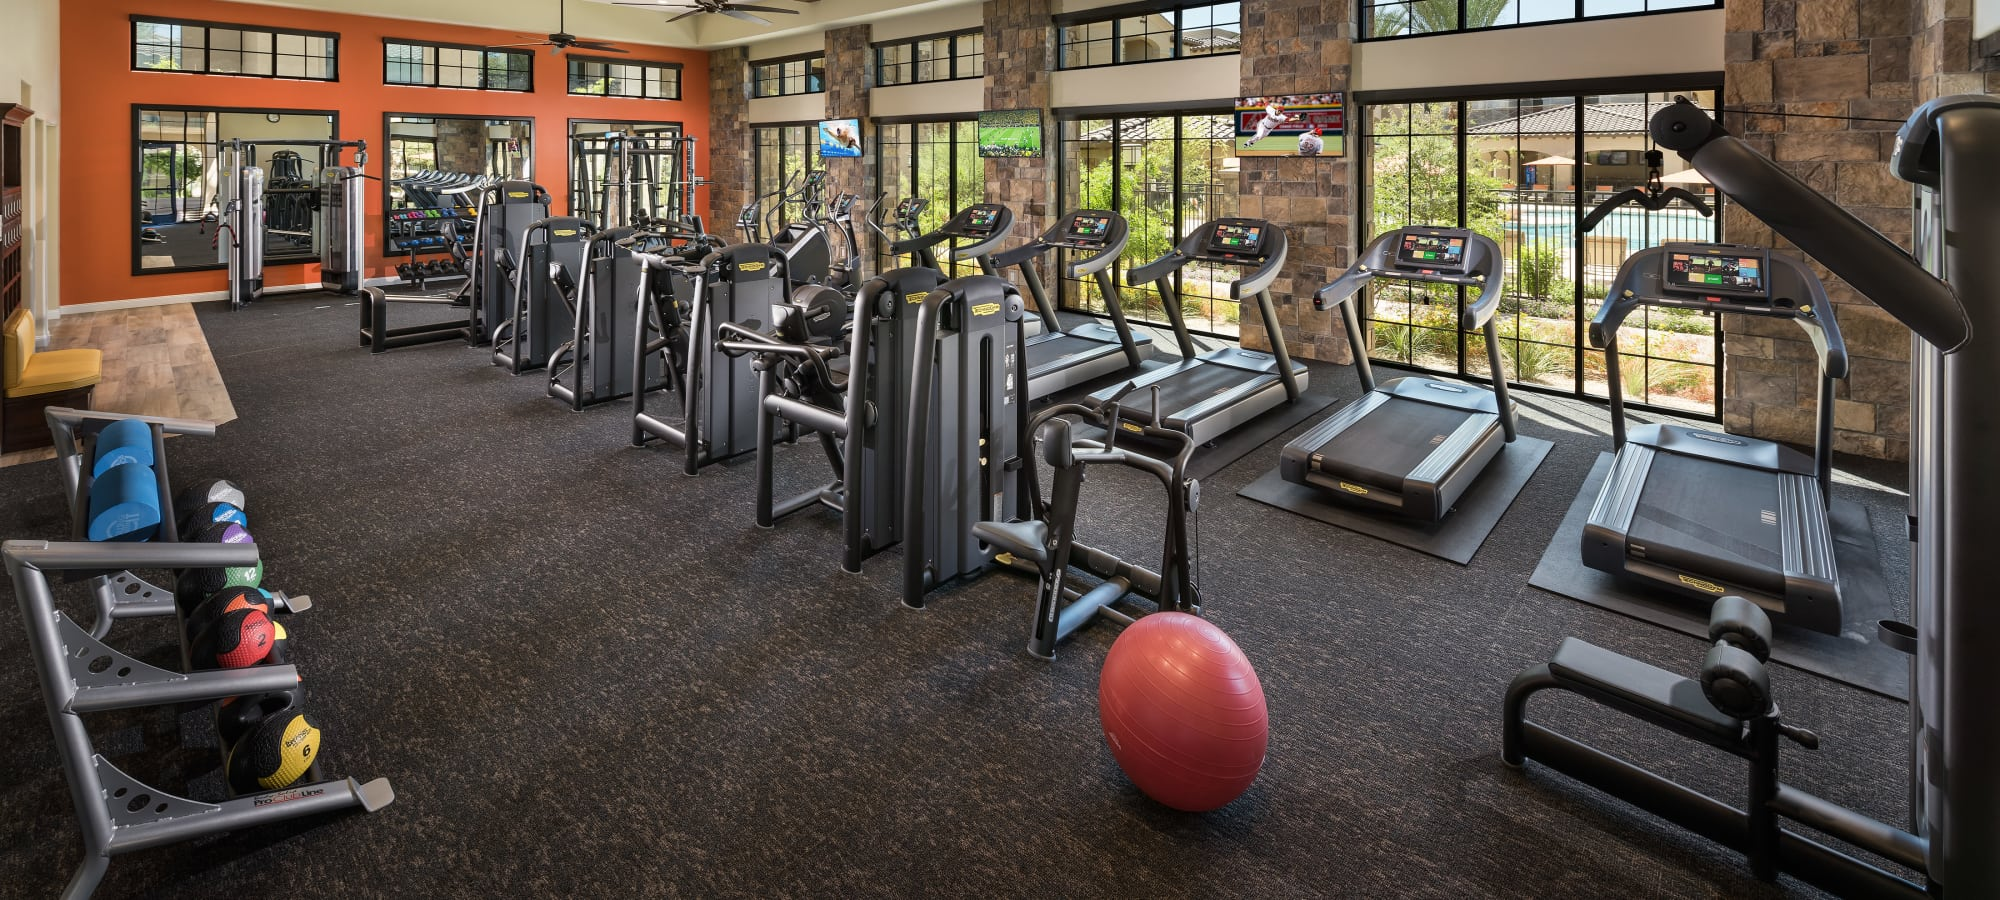 State-of-the-art fitness center with treadmills at San Portales in Scottsdale, Arizona